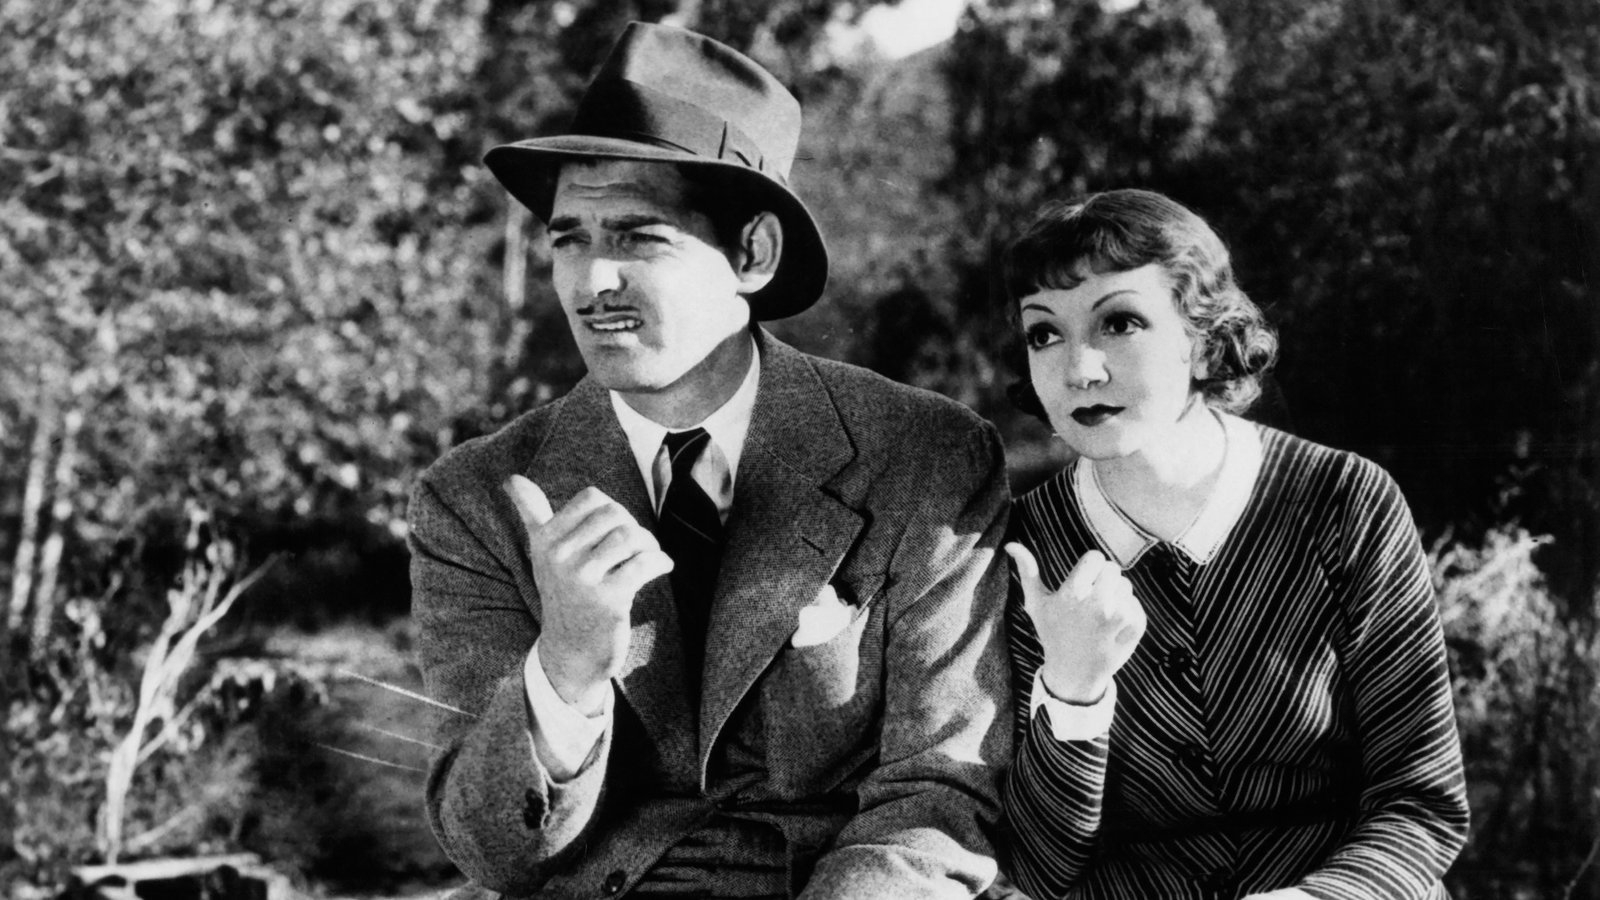 #21) It Happened One Night - (1934 - dir. Frank Capra)